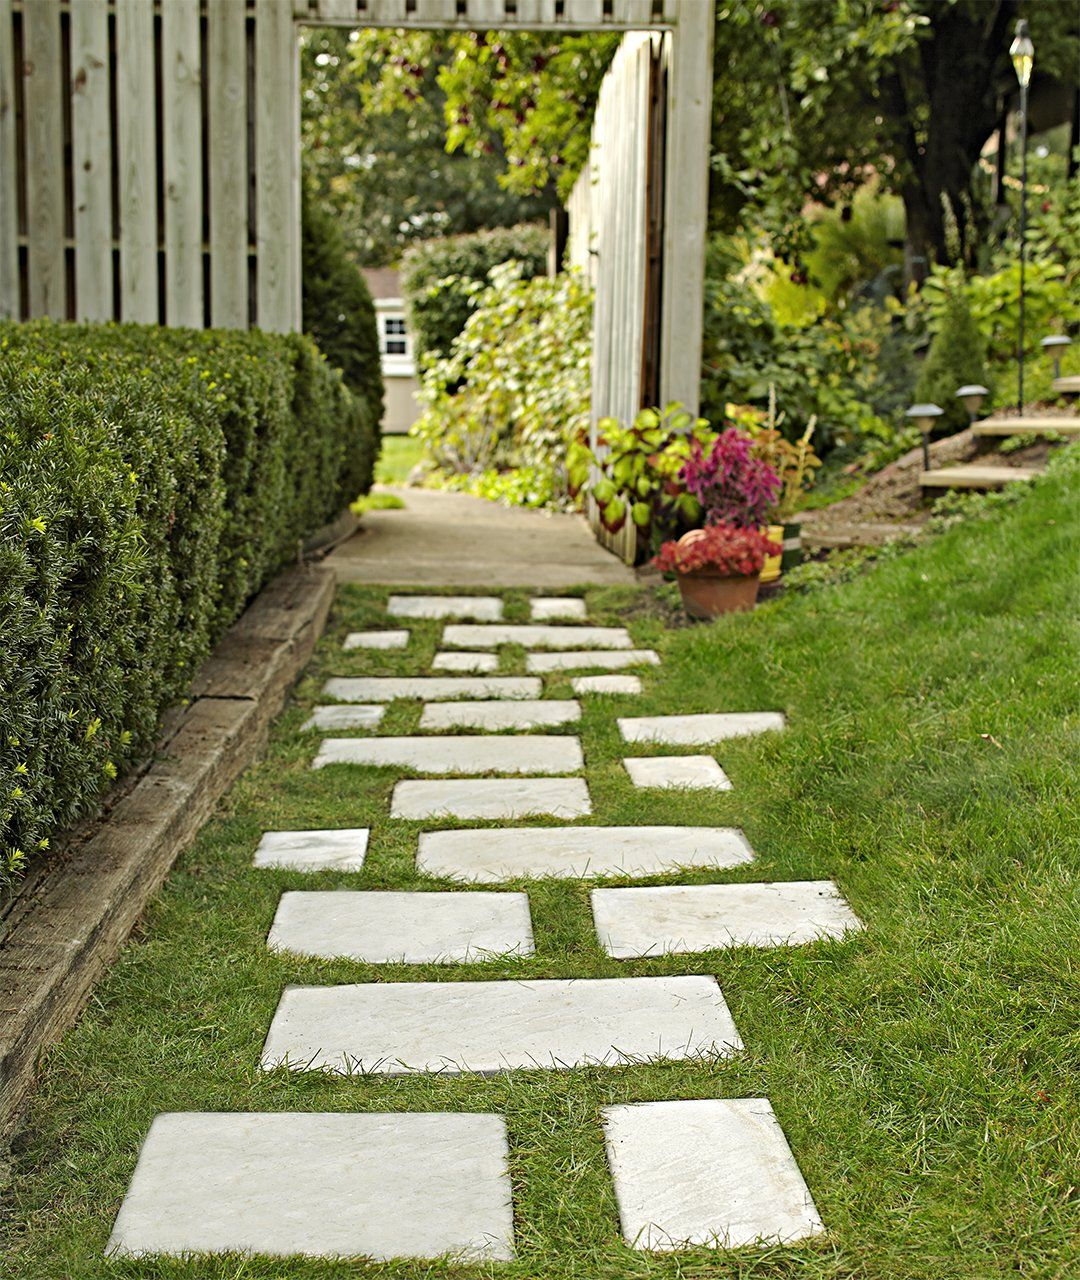 save your yard from run off with a paver walkway in 2020 on magnificent garden walkways ideas for unique outdoor setting id=76062